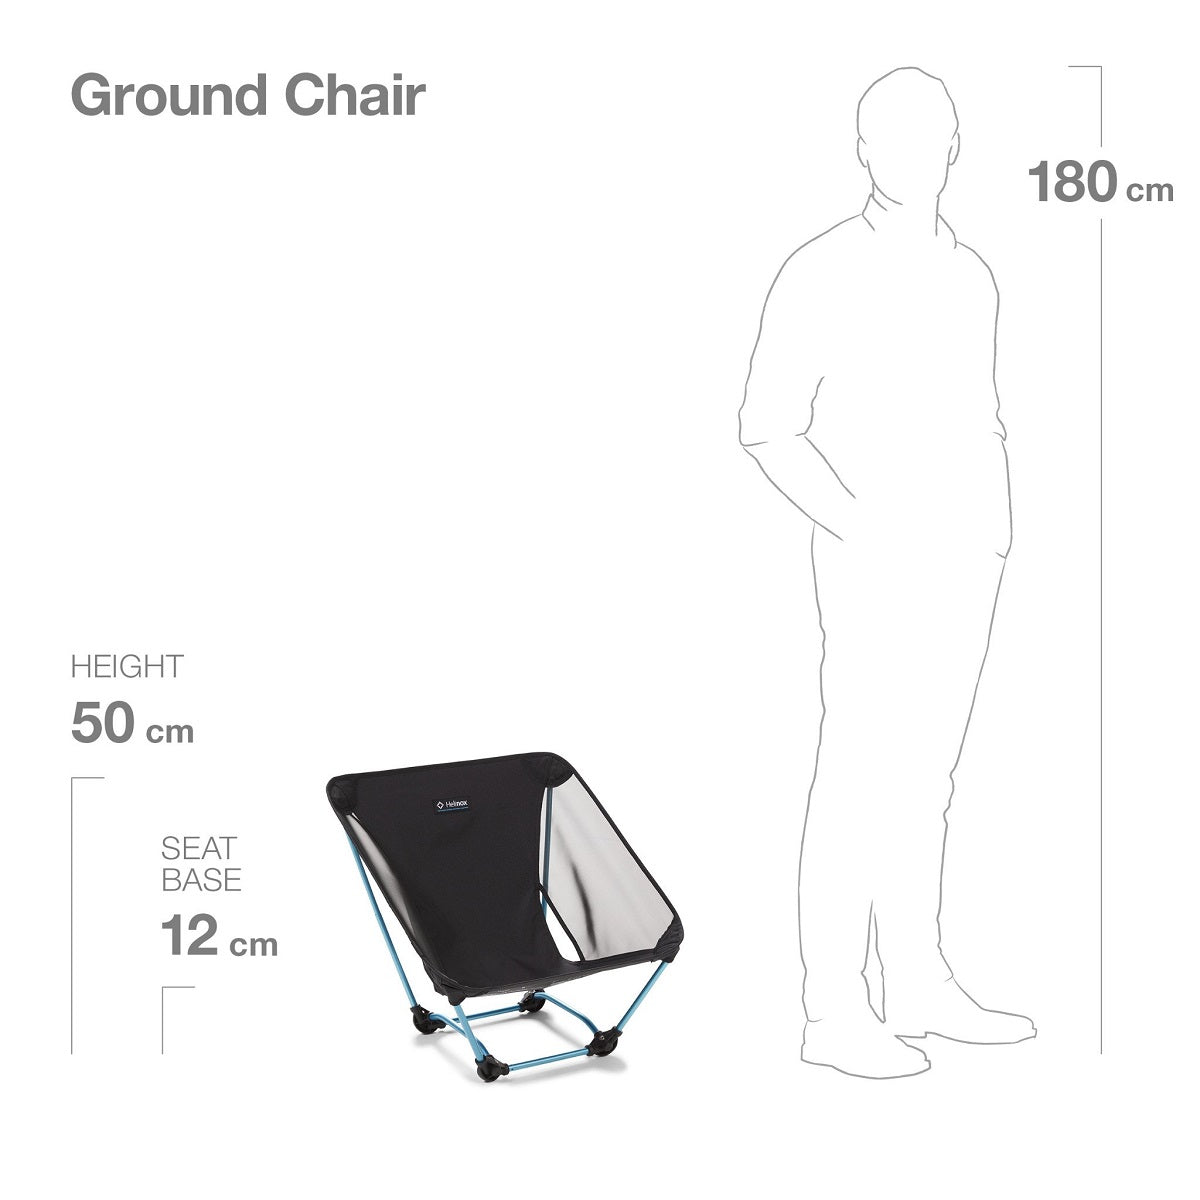 Helinox Ground Chair overview